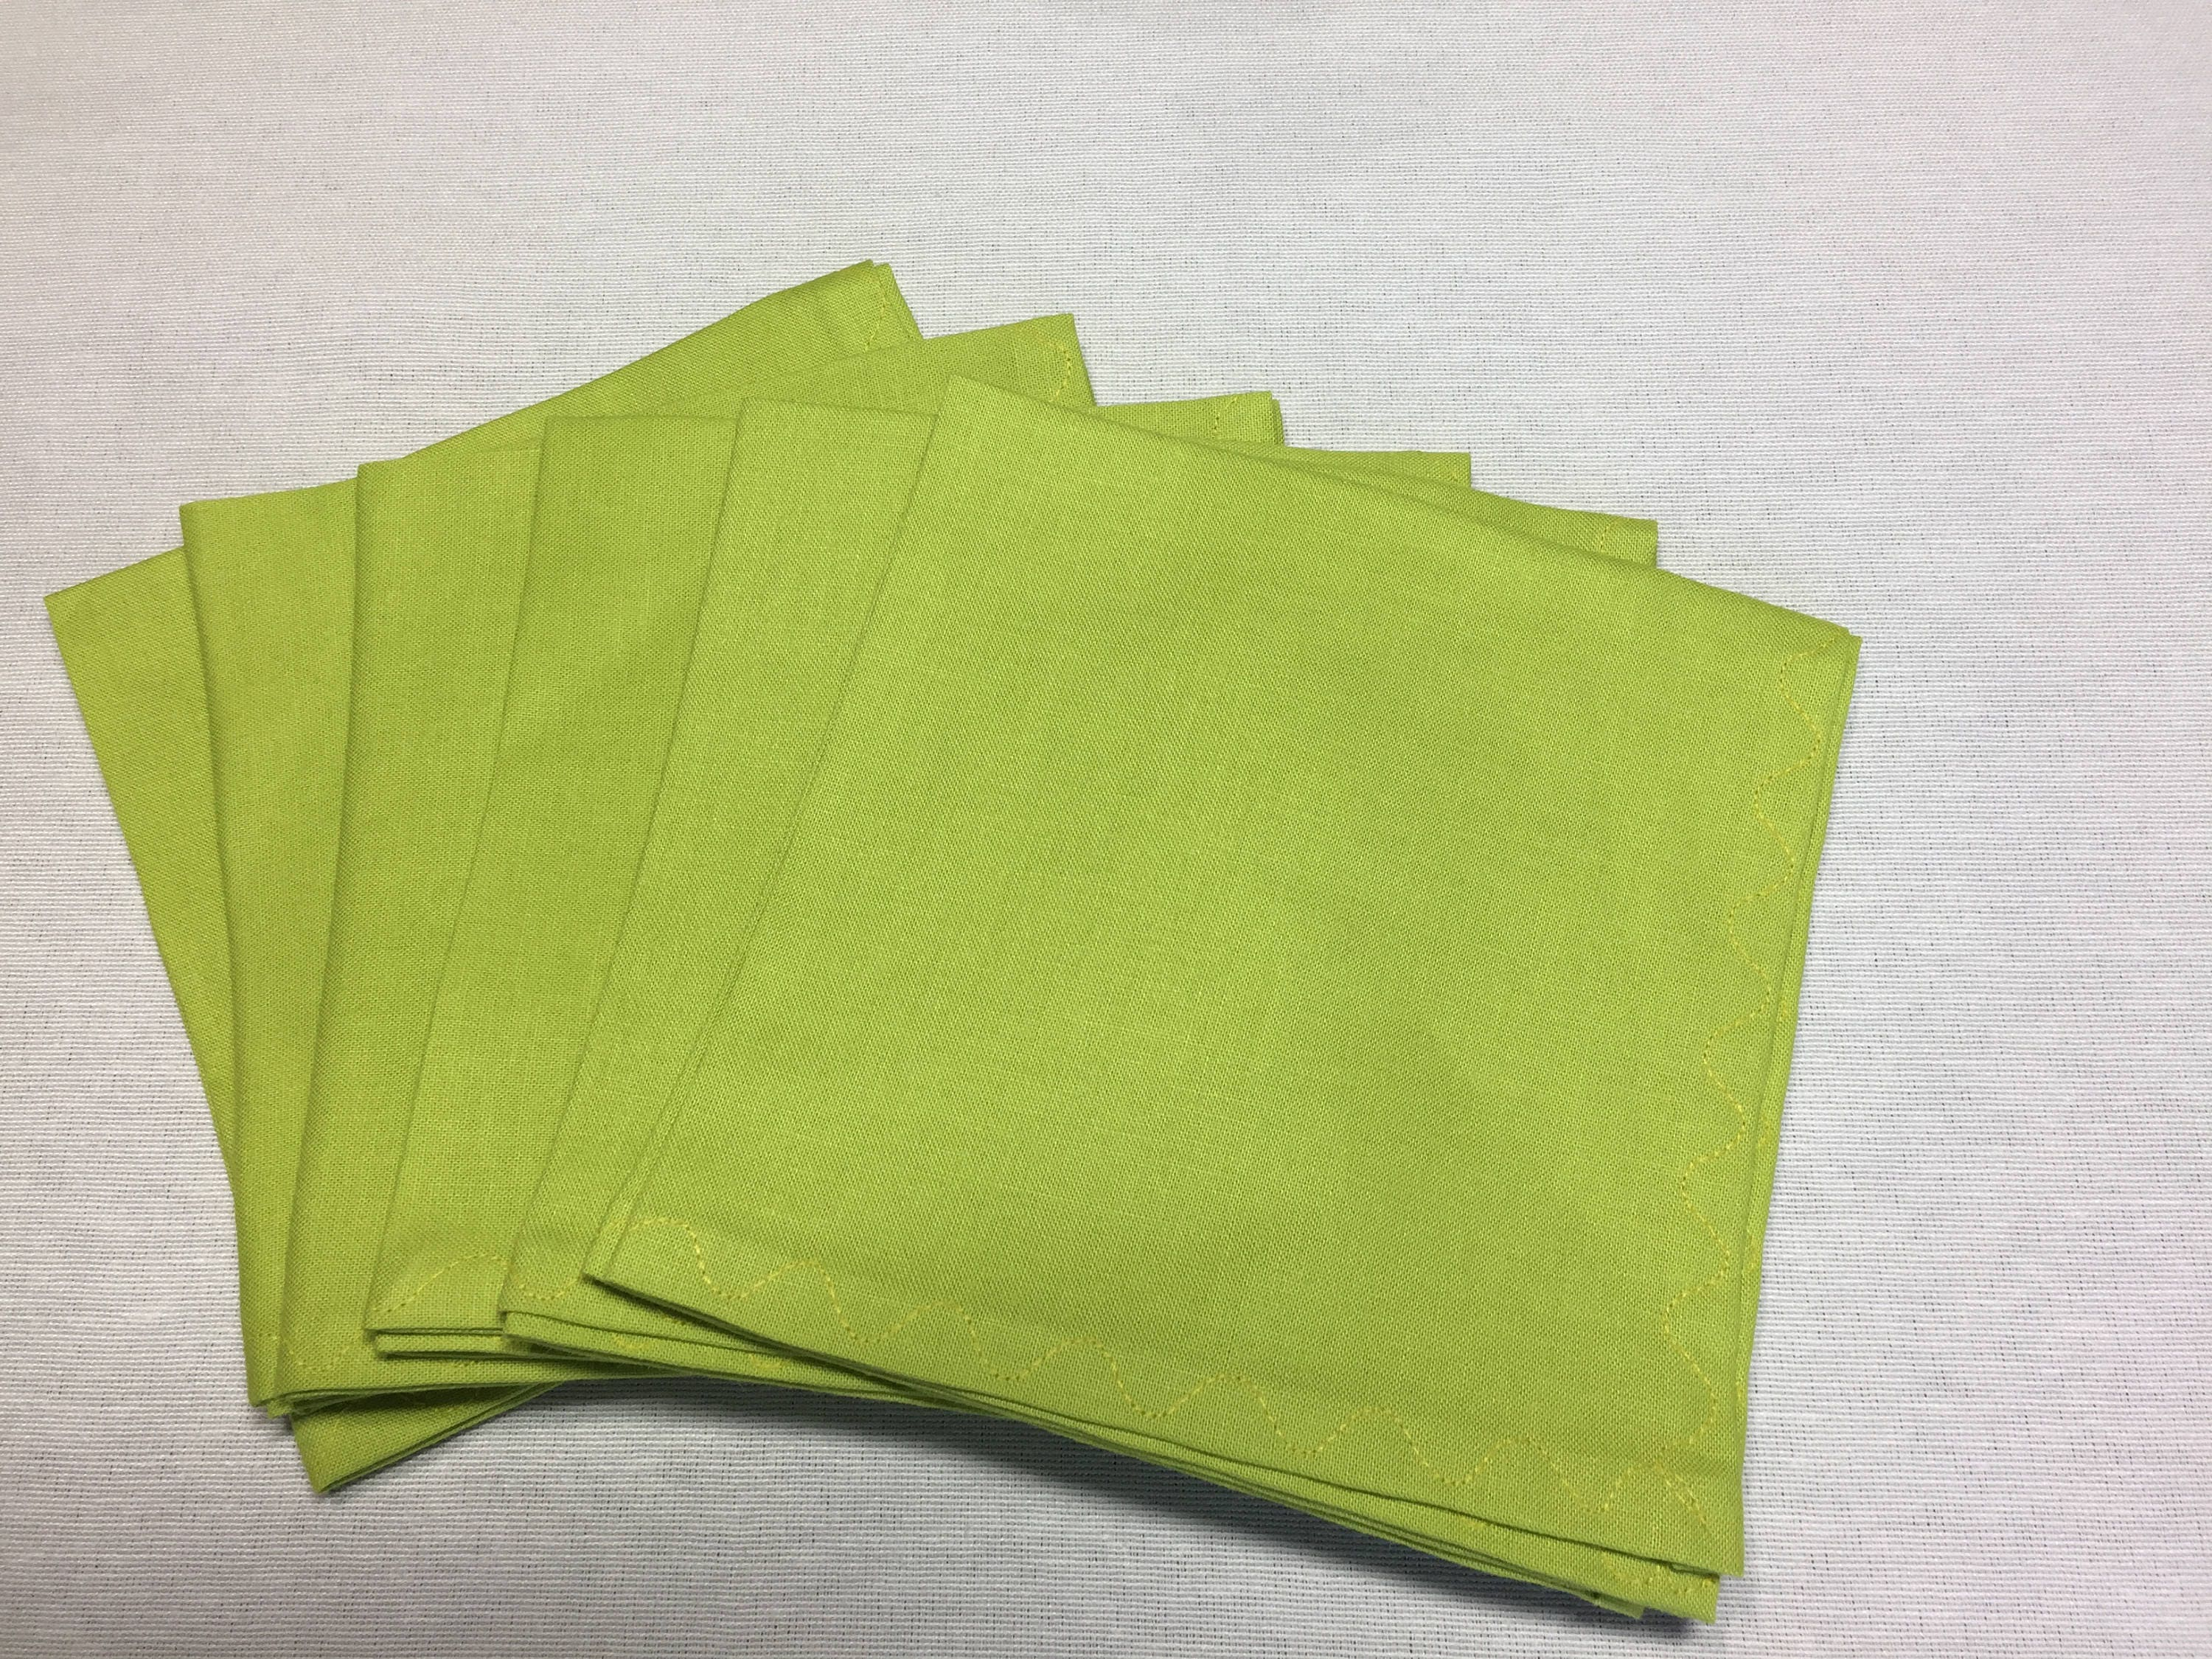 Uncategorized Fabric For Napkins lime green napkins cloth dinner table linens reusable cotton fabric napkins